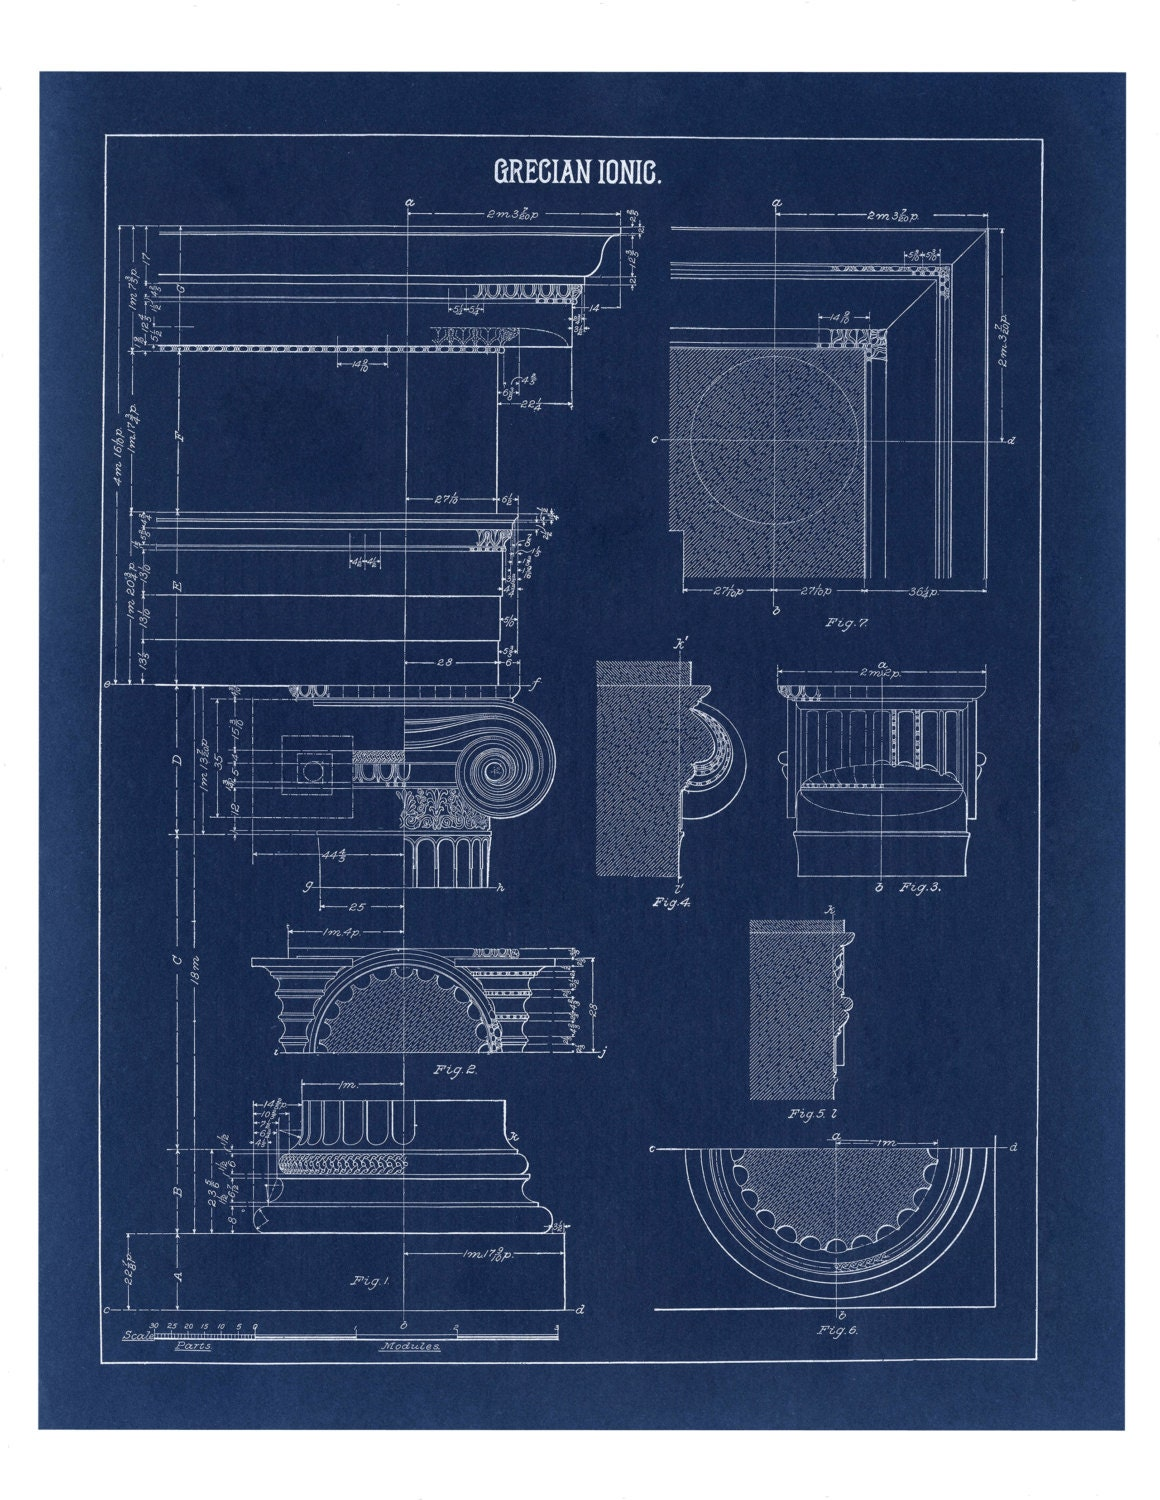 Blueprint wall decor greek ionic column drawing architecture zoom malvernweather Image collections